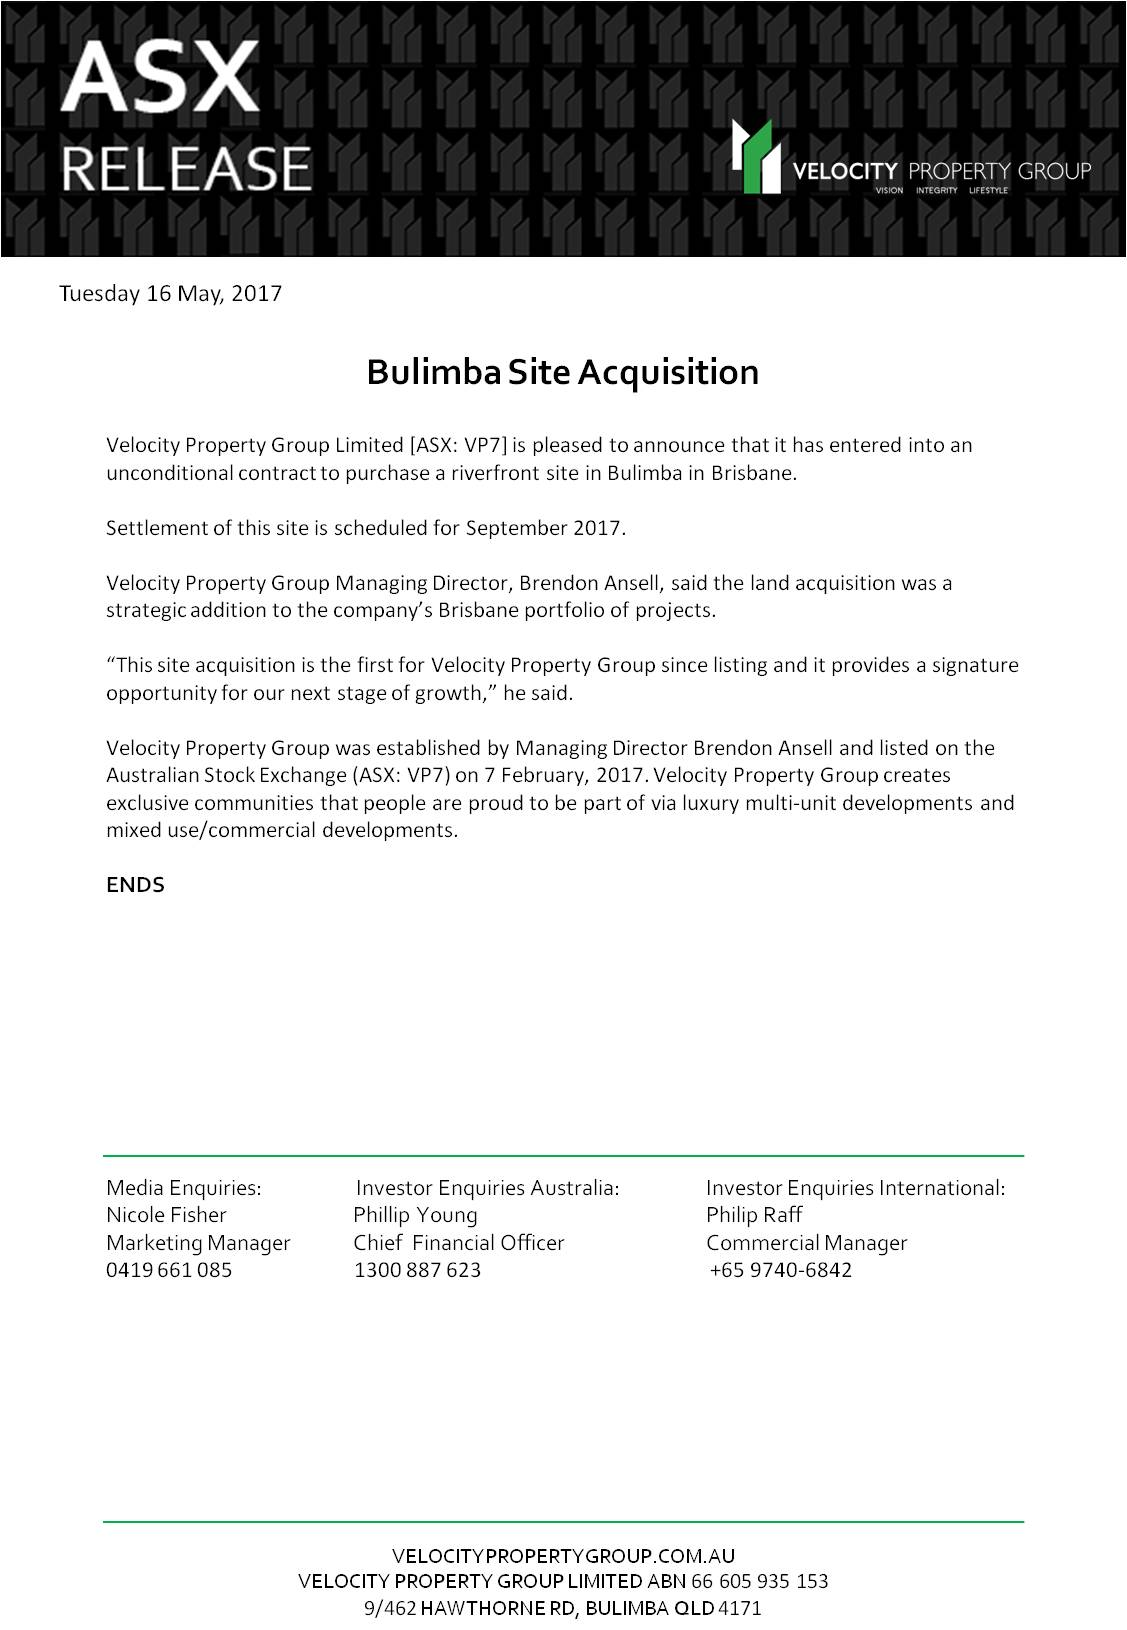 ASX Announcement Bulimba Site Acquisition